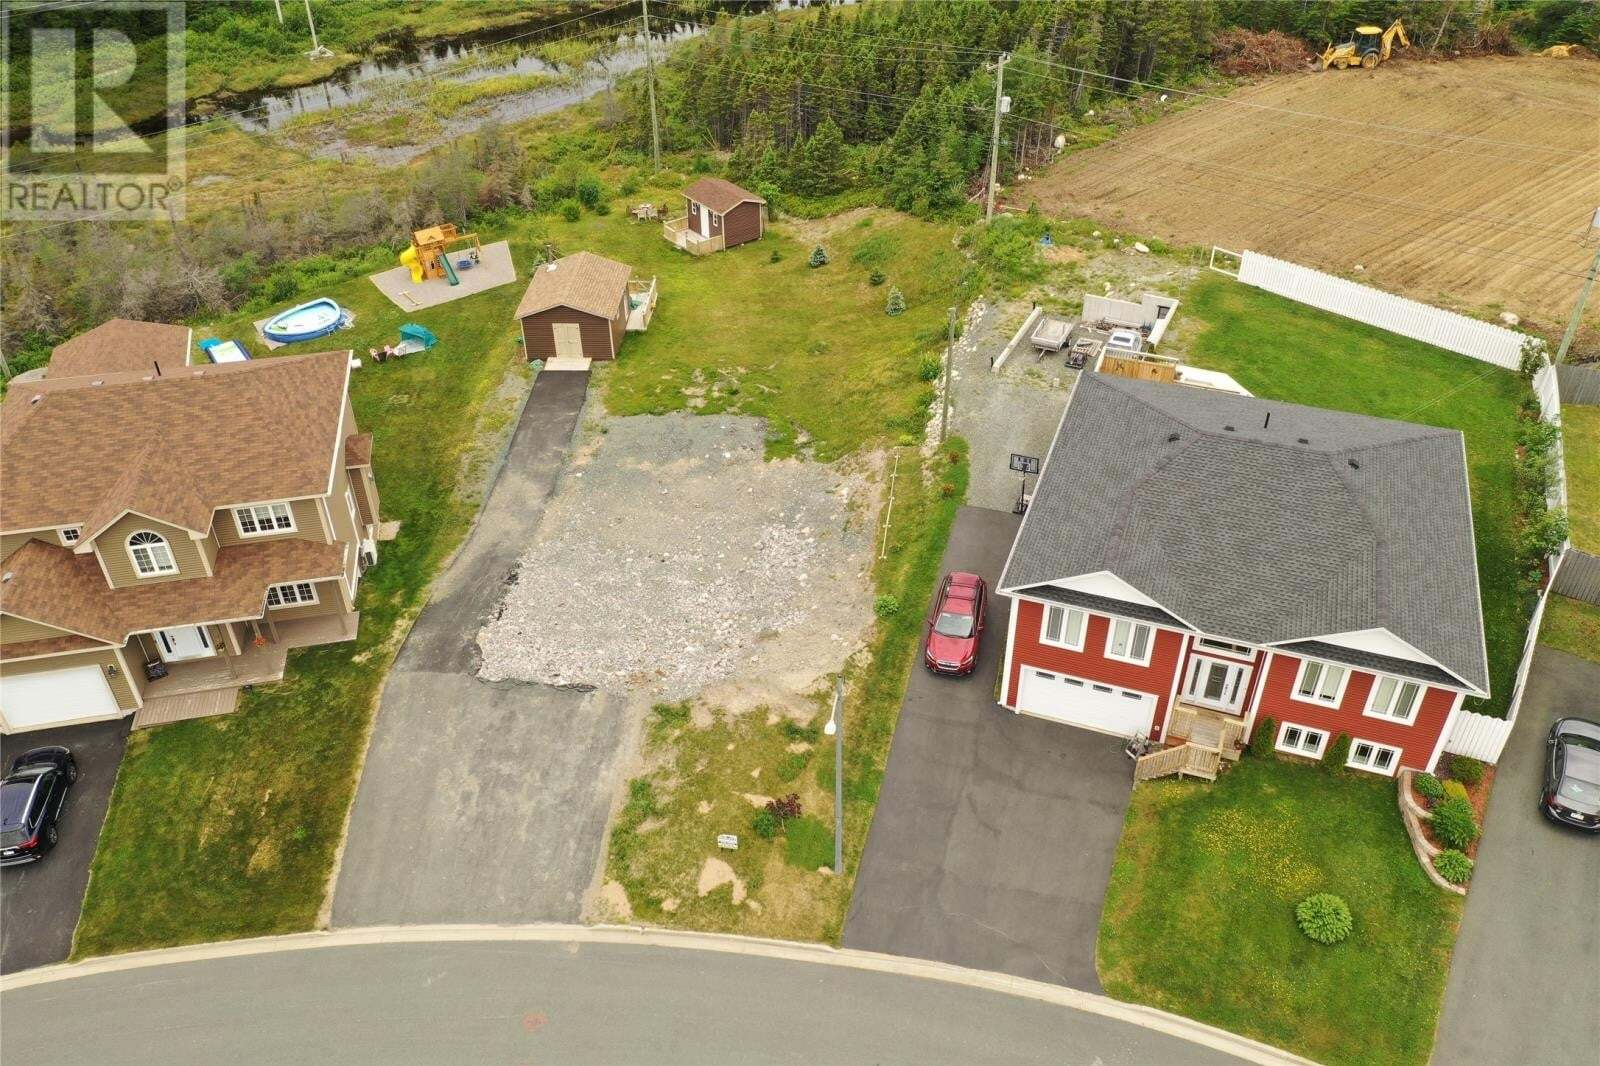 Residential property for sale at 20 Emerald Dr Conception Bay South Newfoundland - MLS: 1213849